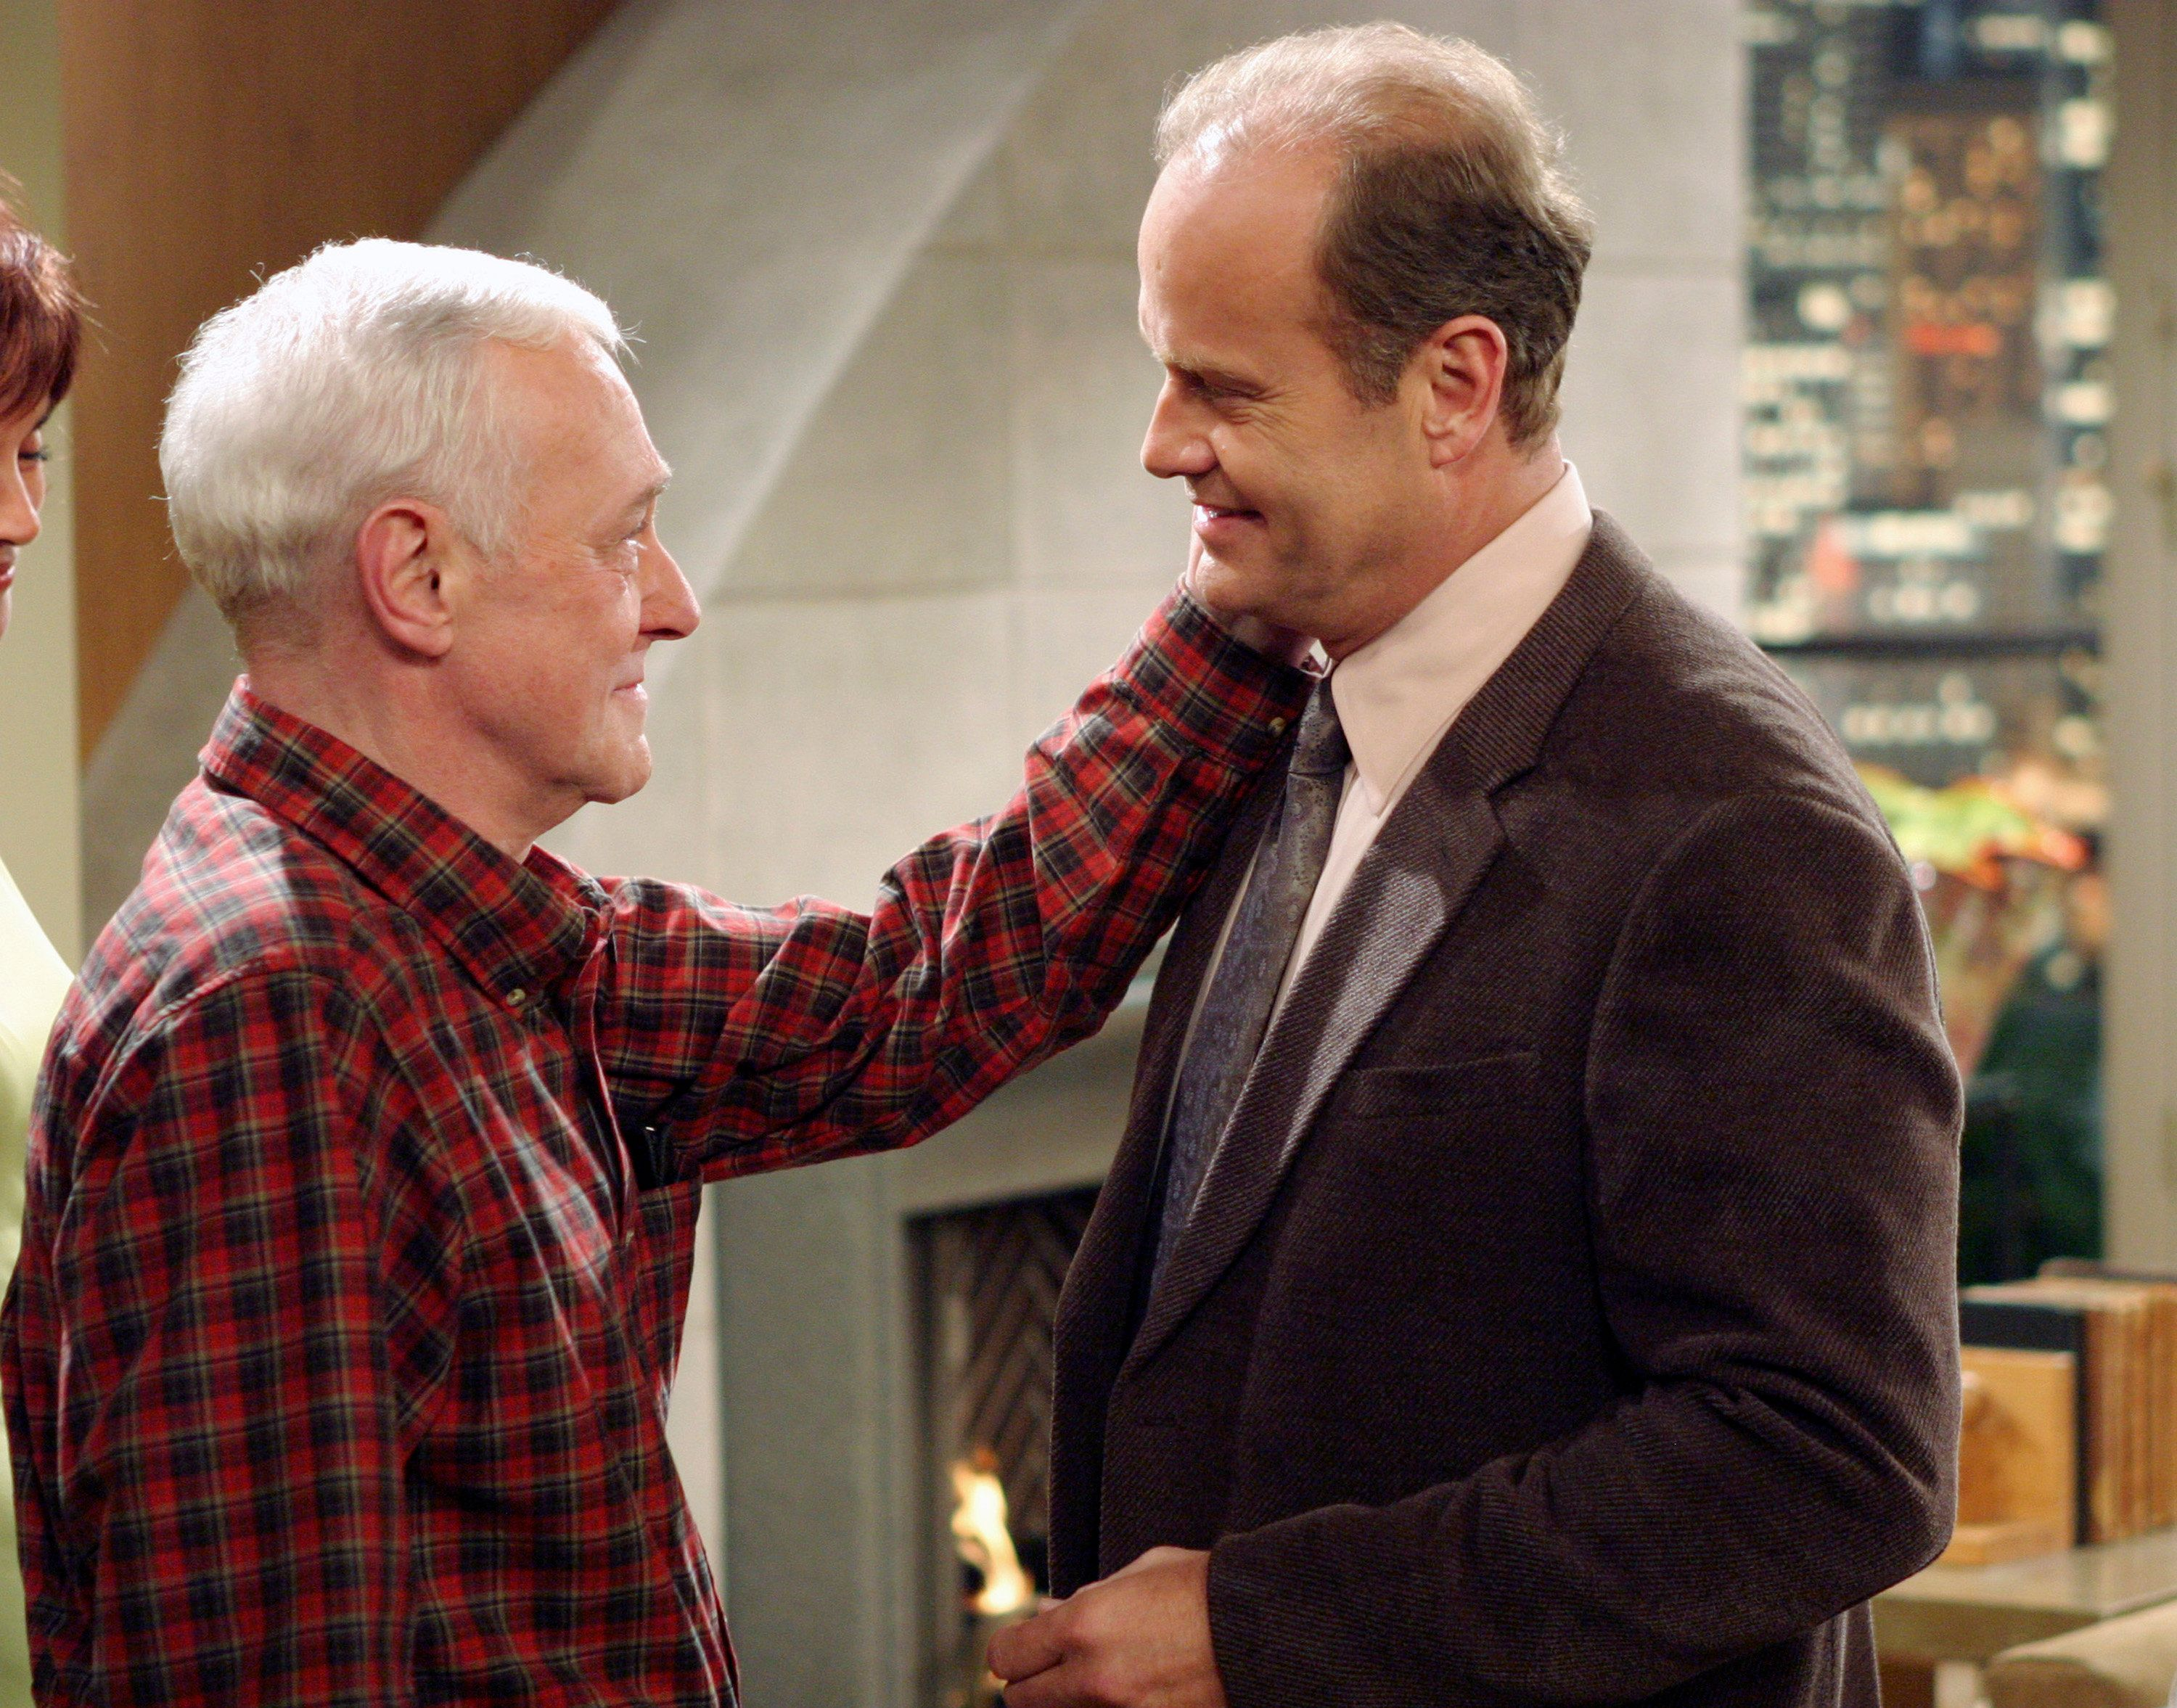 FRASIER -- 'Goodnight, Seattle' Episode 21 -- Pictured: (l-r) John Mahoney as Martin Crane, Kelsey Grammer as Dr. Frasier Crane -- (Photo by: NBC/NBCU Photo Bank via Getty Images)